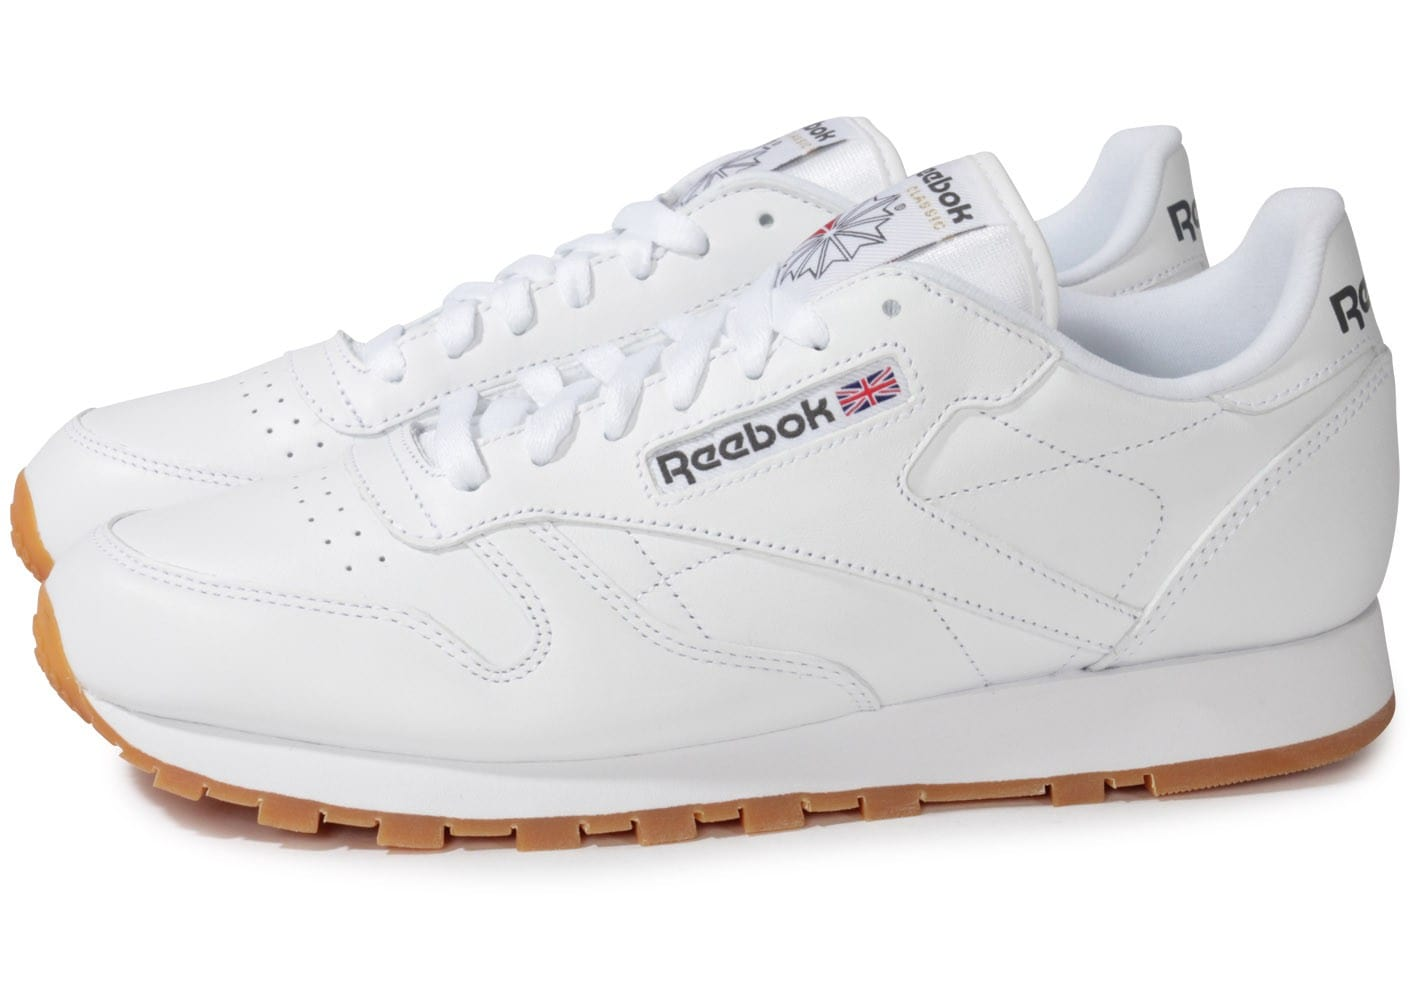 Reebok Classic Leather Blanche Gum Chaussures Baskets